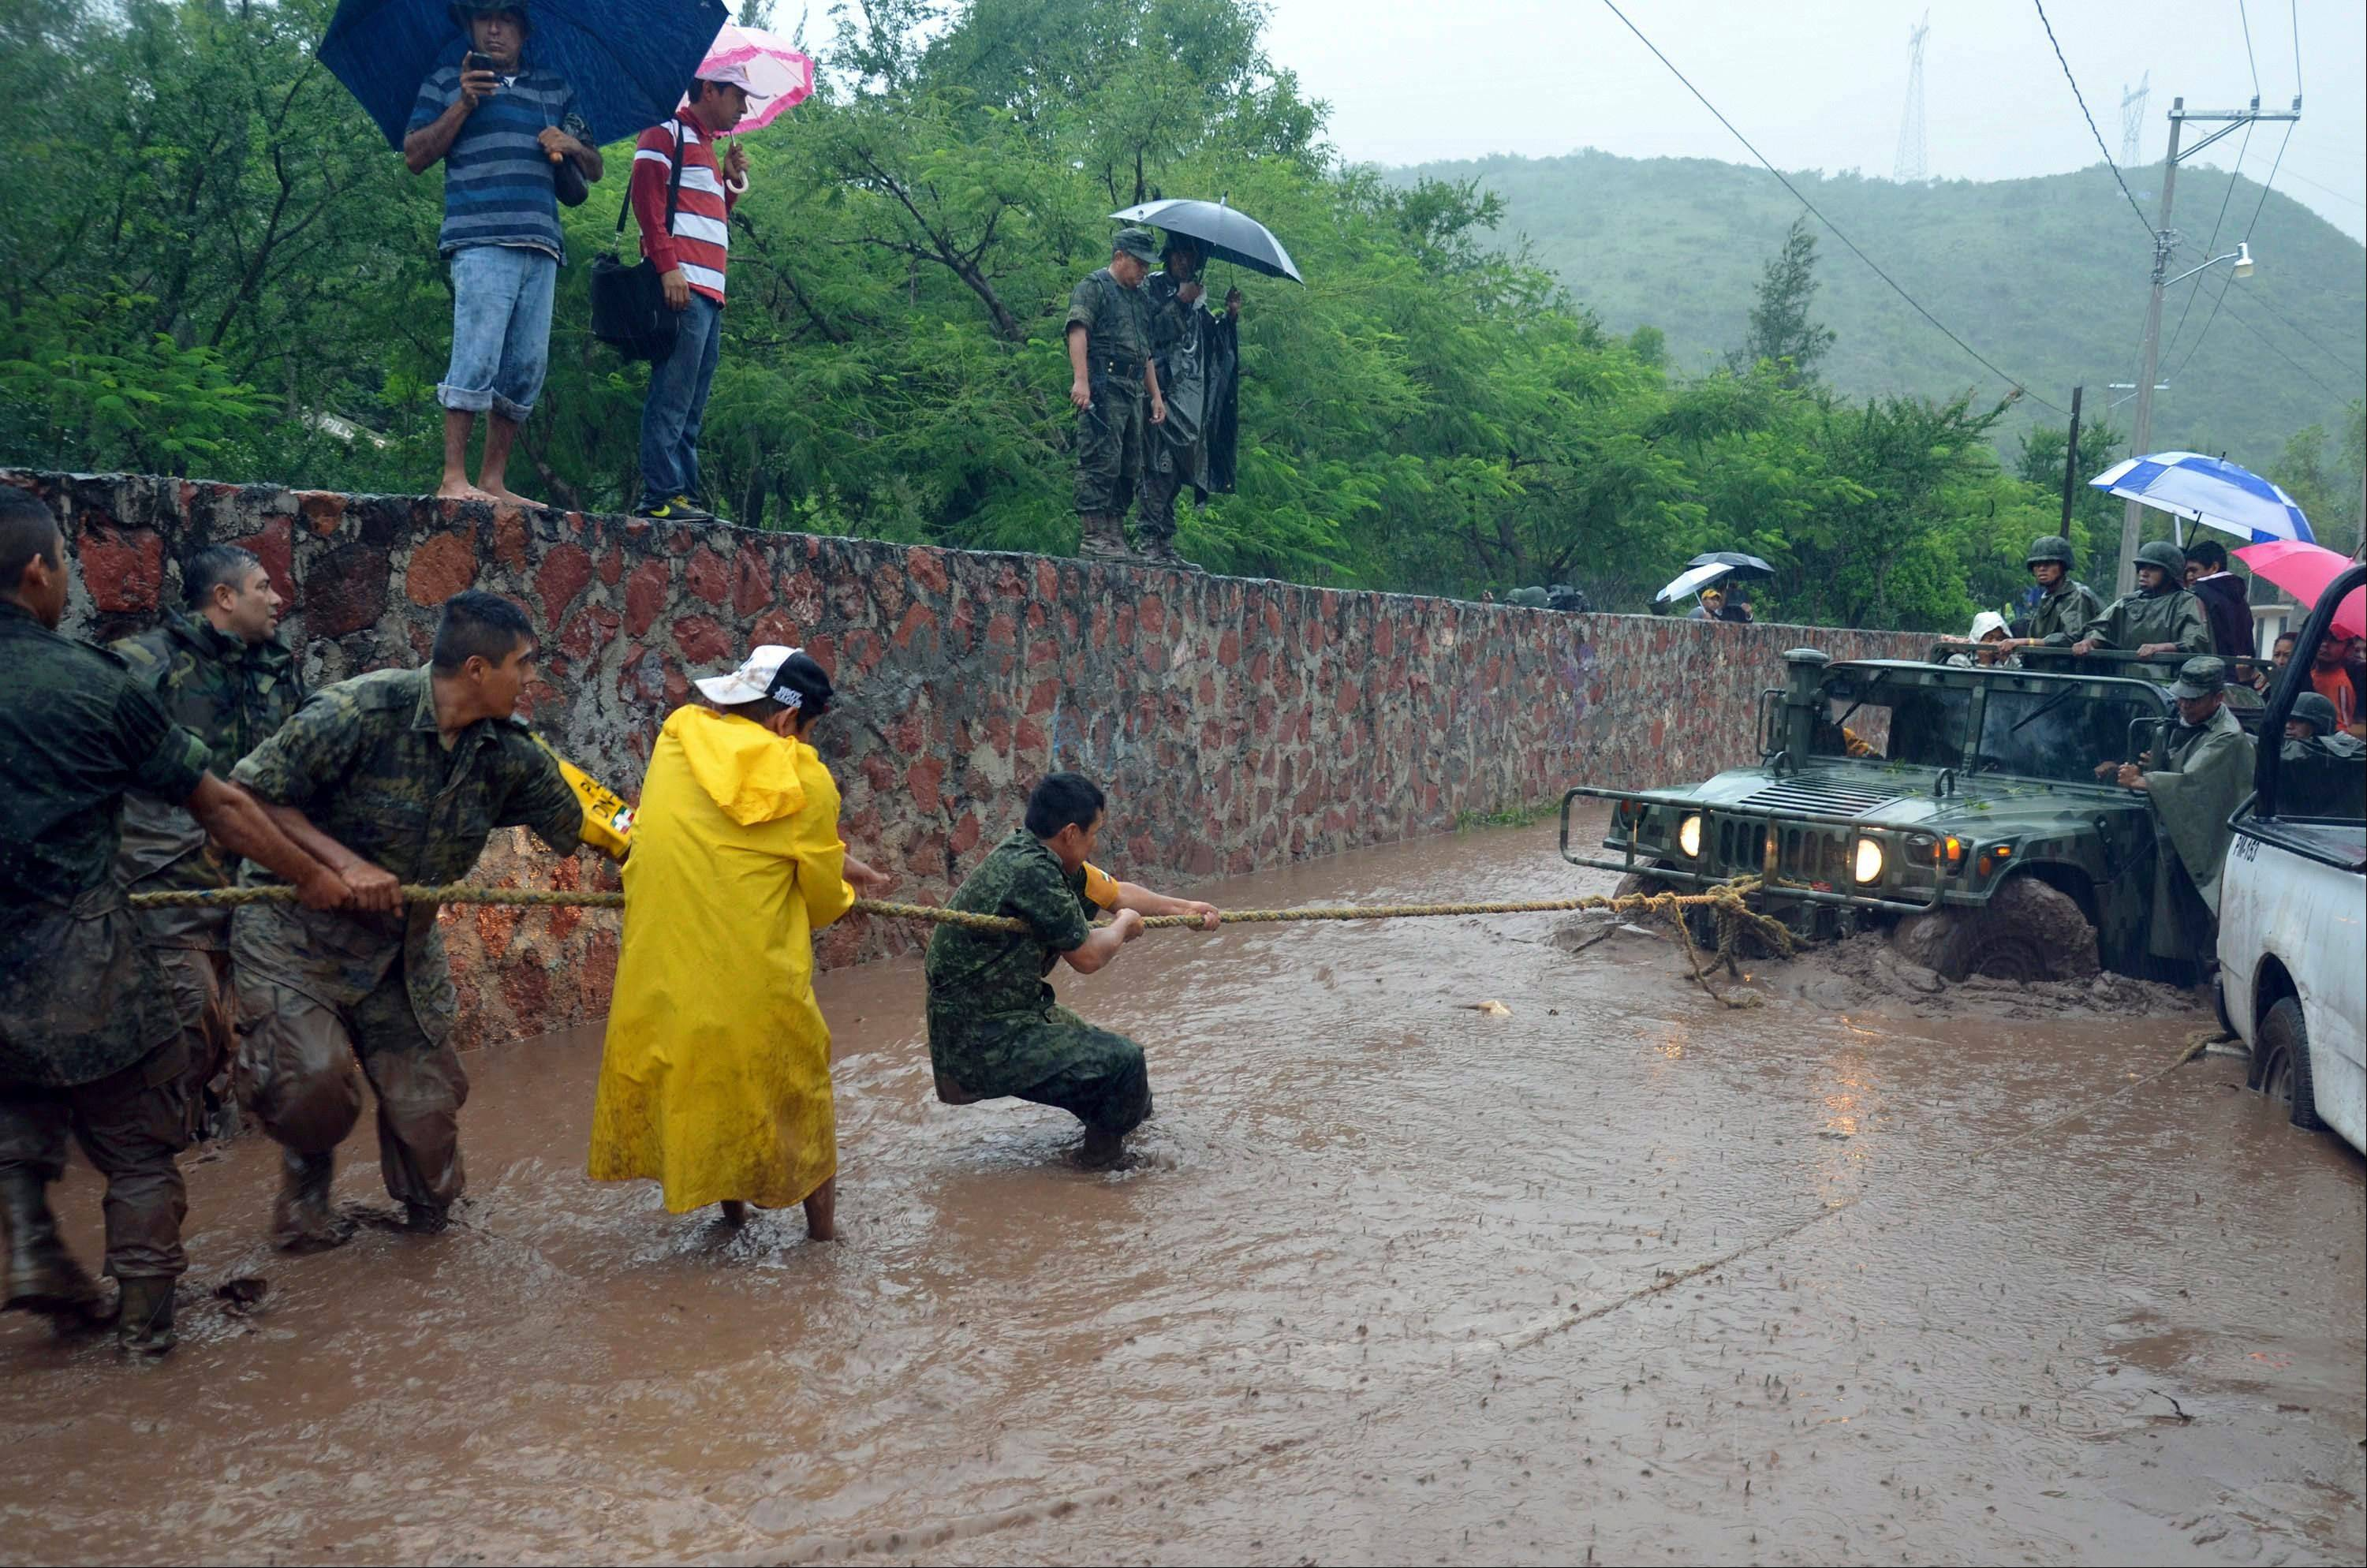 Army soldiers work to try to get their vehicle out of a flooded portion of a road caused by Tropical Storm Manuel in the city of Chilpancingo, Mexico, Sunday. In the southern Pacific Coast state of Guerrero, rains unleashed by Manuel resulted in the deaths of six people when their SUV lost control on a highway headed for the tourist resort of Acapulco. Another five people died in landslides in Guerrero and Puebla states, while the collapse of a fence killed another person in Acapulco.